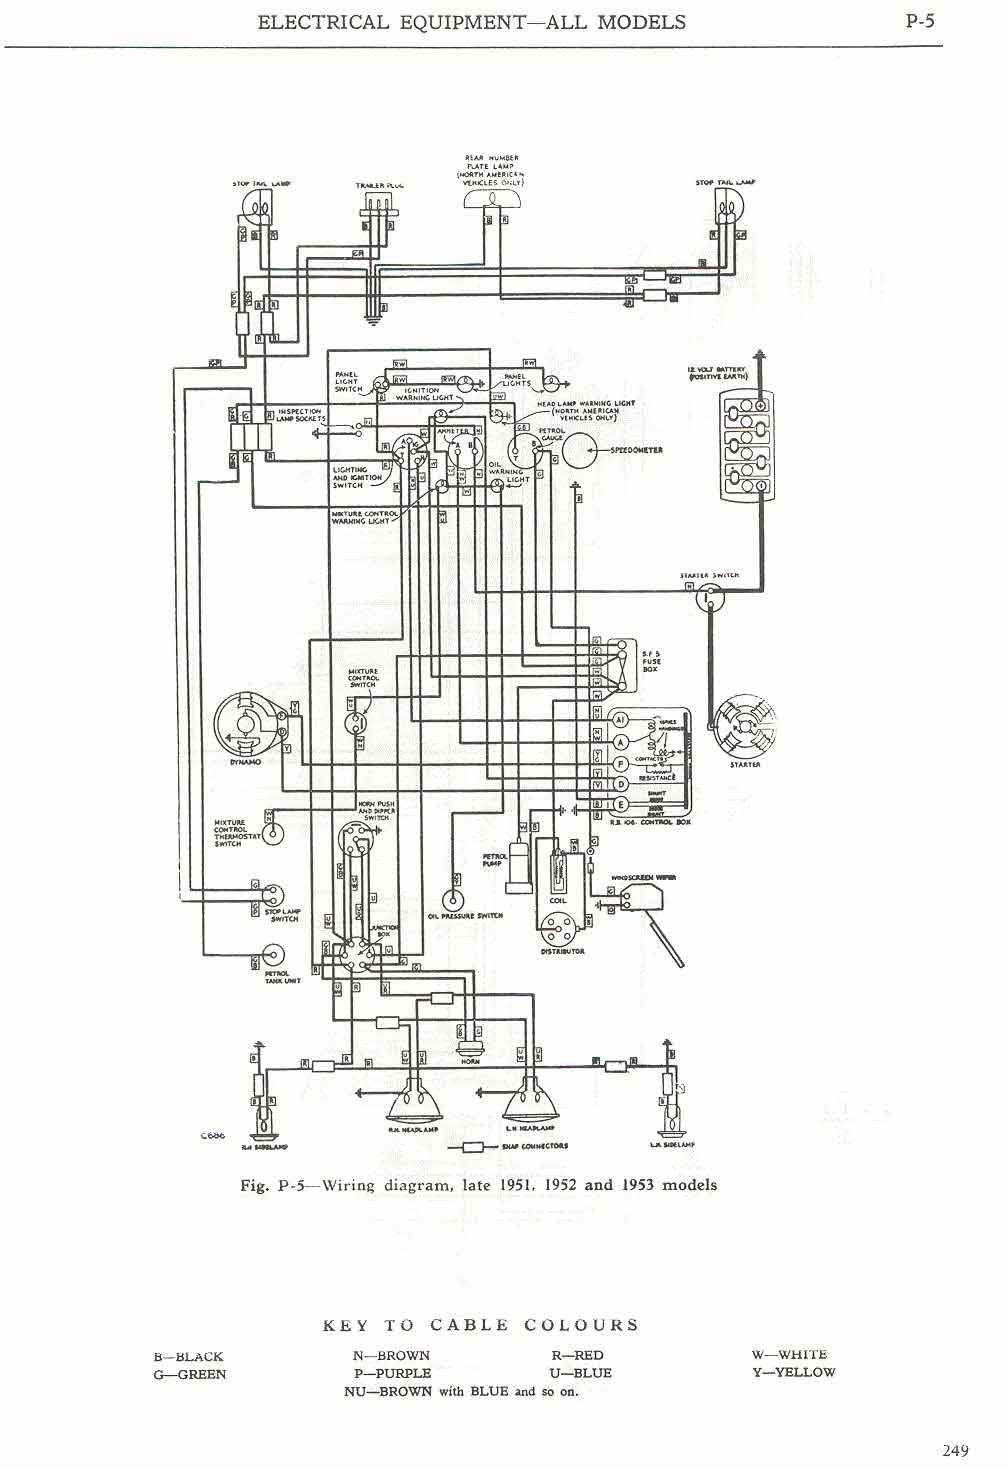 1974 series 3 land rover wiring diagram land rover faq - repair & maintenance - series ... series 1 land rover wiring diagram